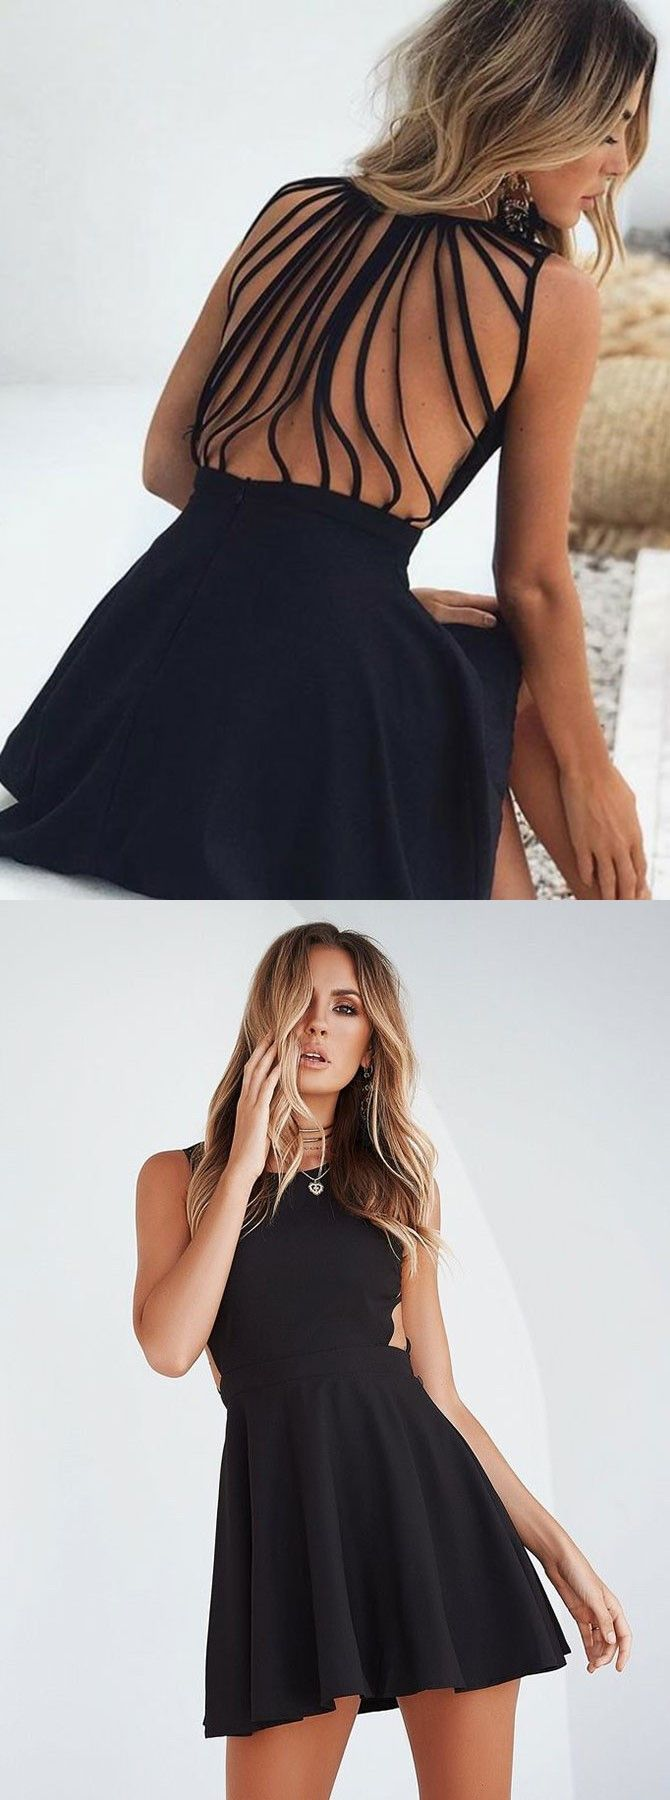 Aline round neck cut out short satin black homecoming party dresses